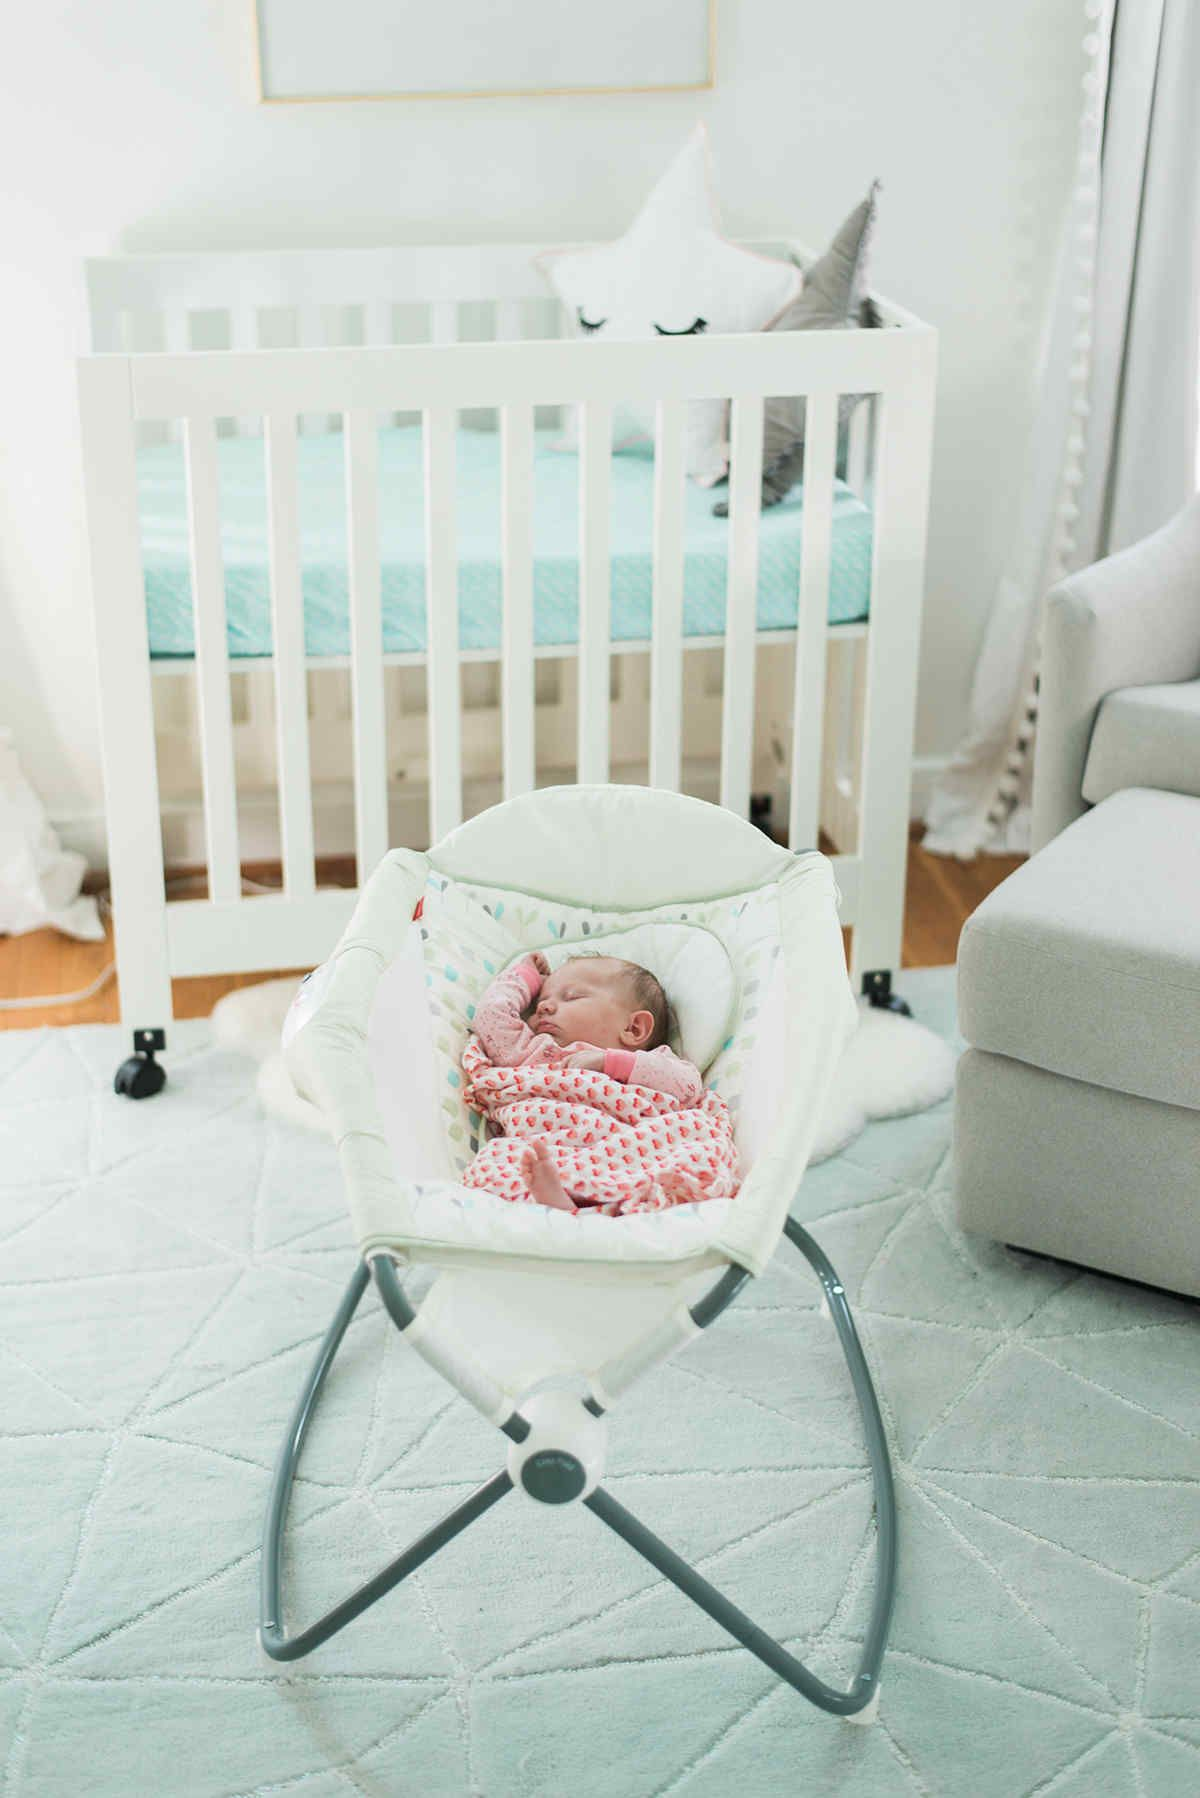 solution practical cribs mini baby crib as shipping free design white the convertible cheap craftsmanbb